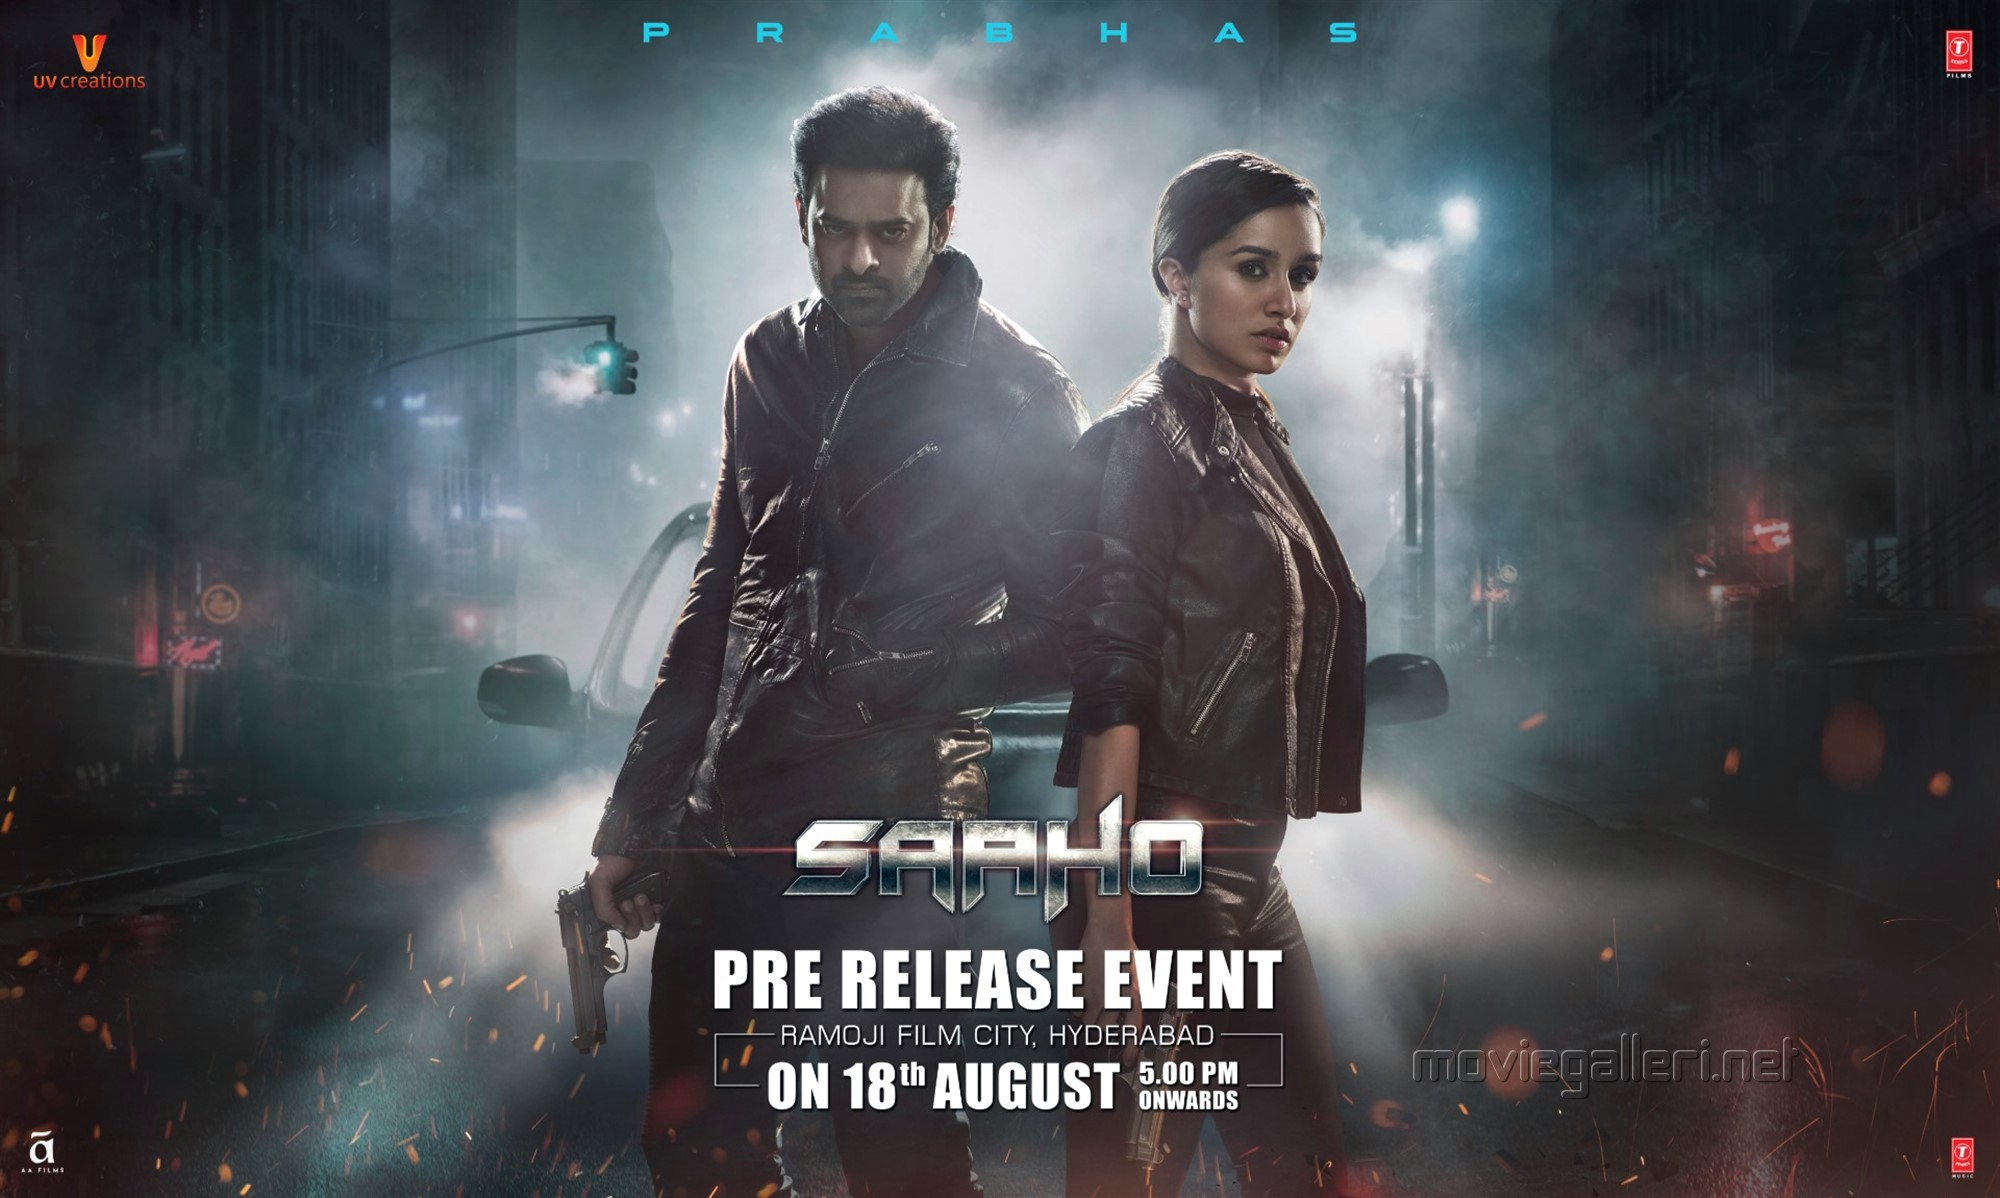 Prabhas Shraddha Kapoor Saaho Movie Pre Release Event on 18th August Wallpapers HD